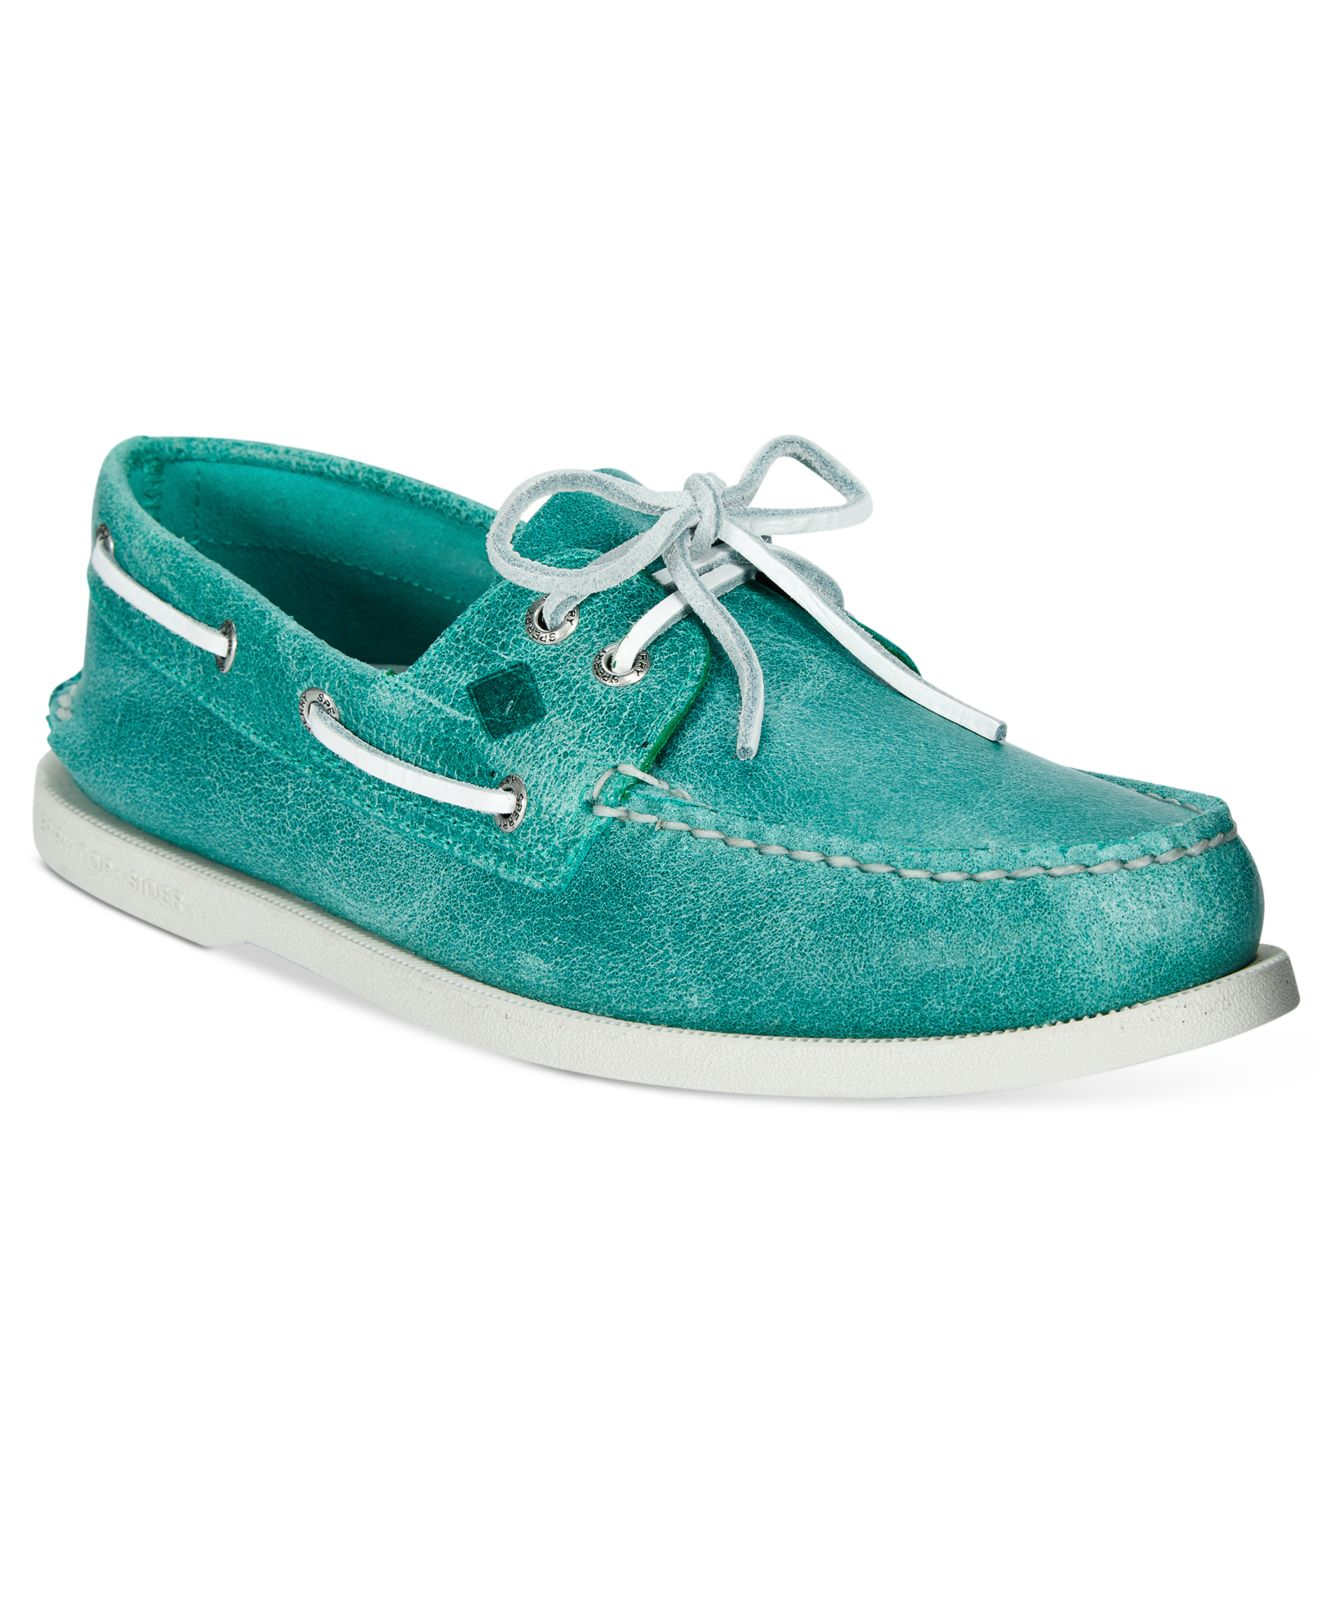 sperry top sider s a o white cap boat shoes in green